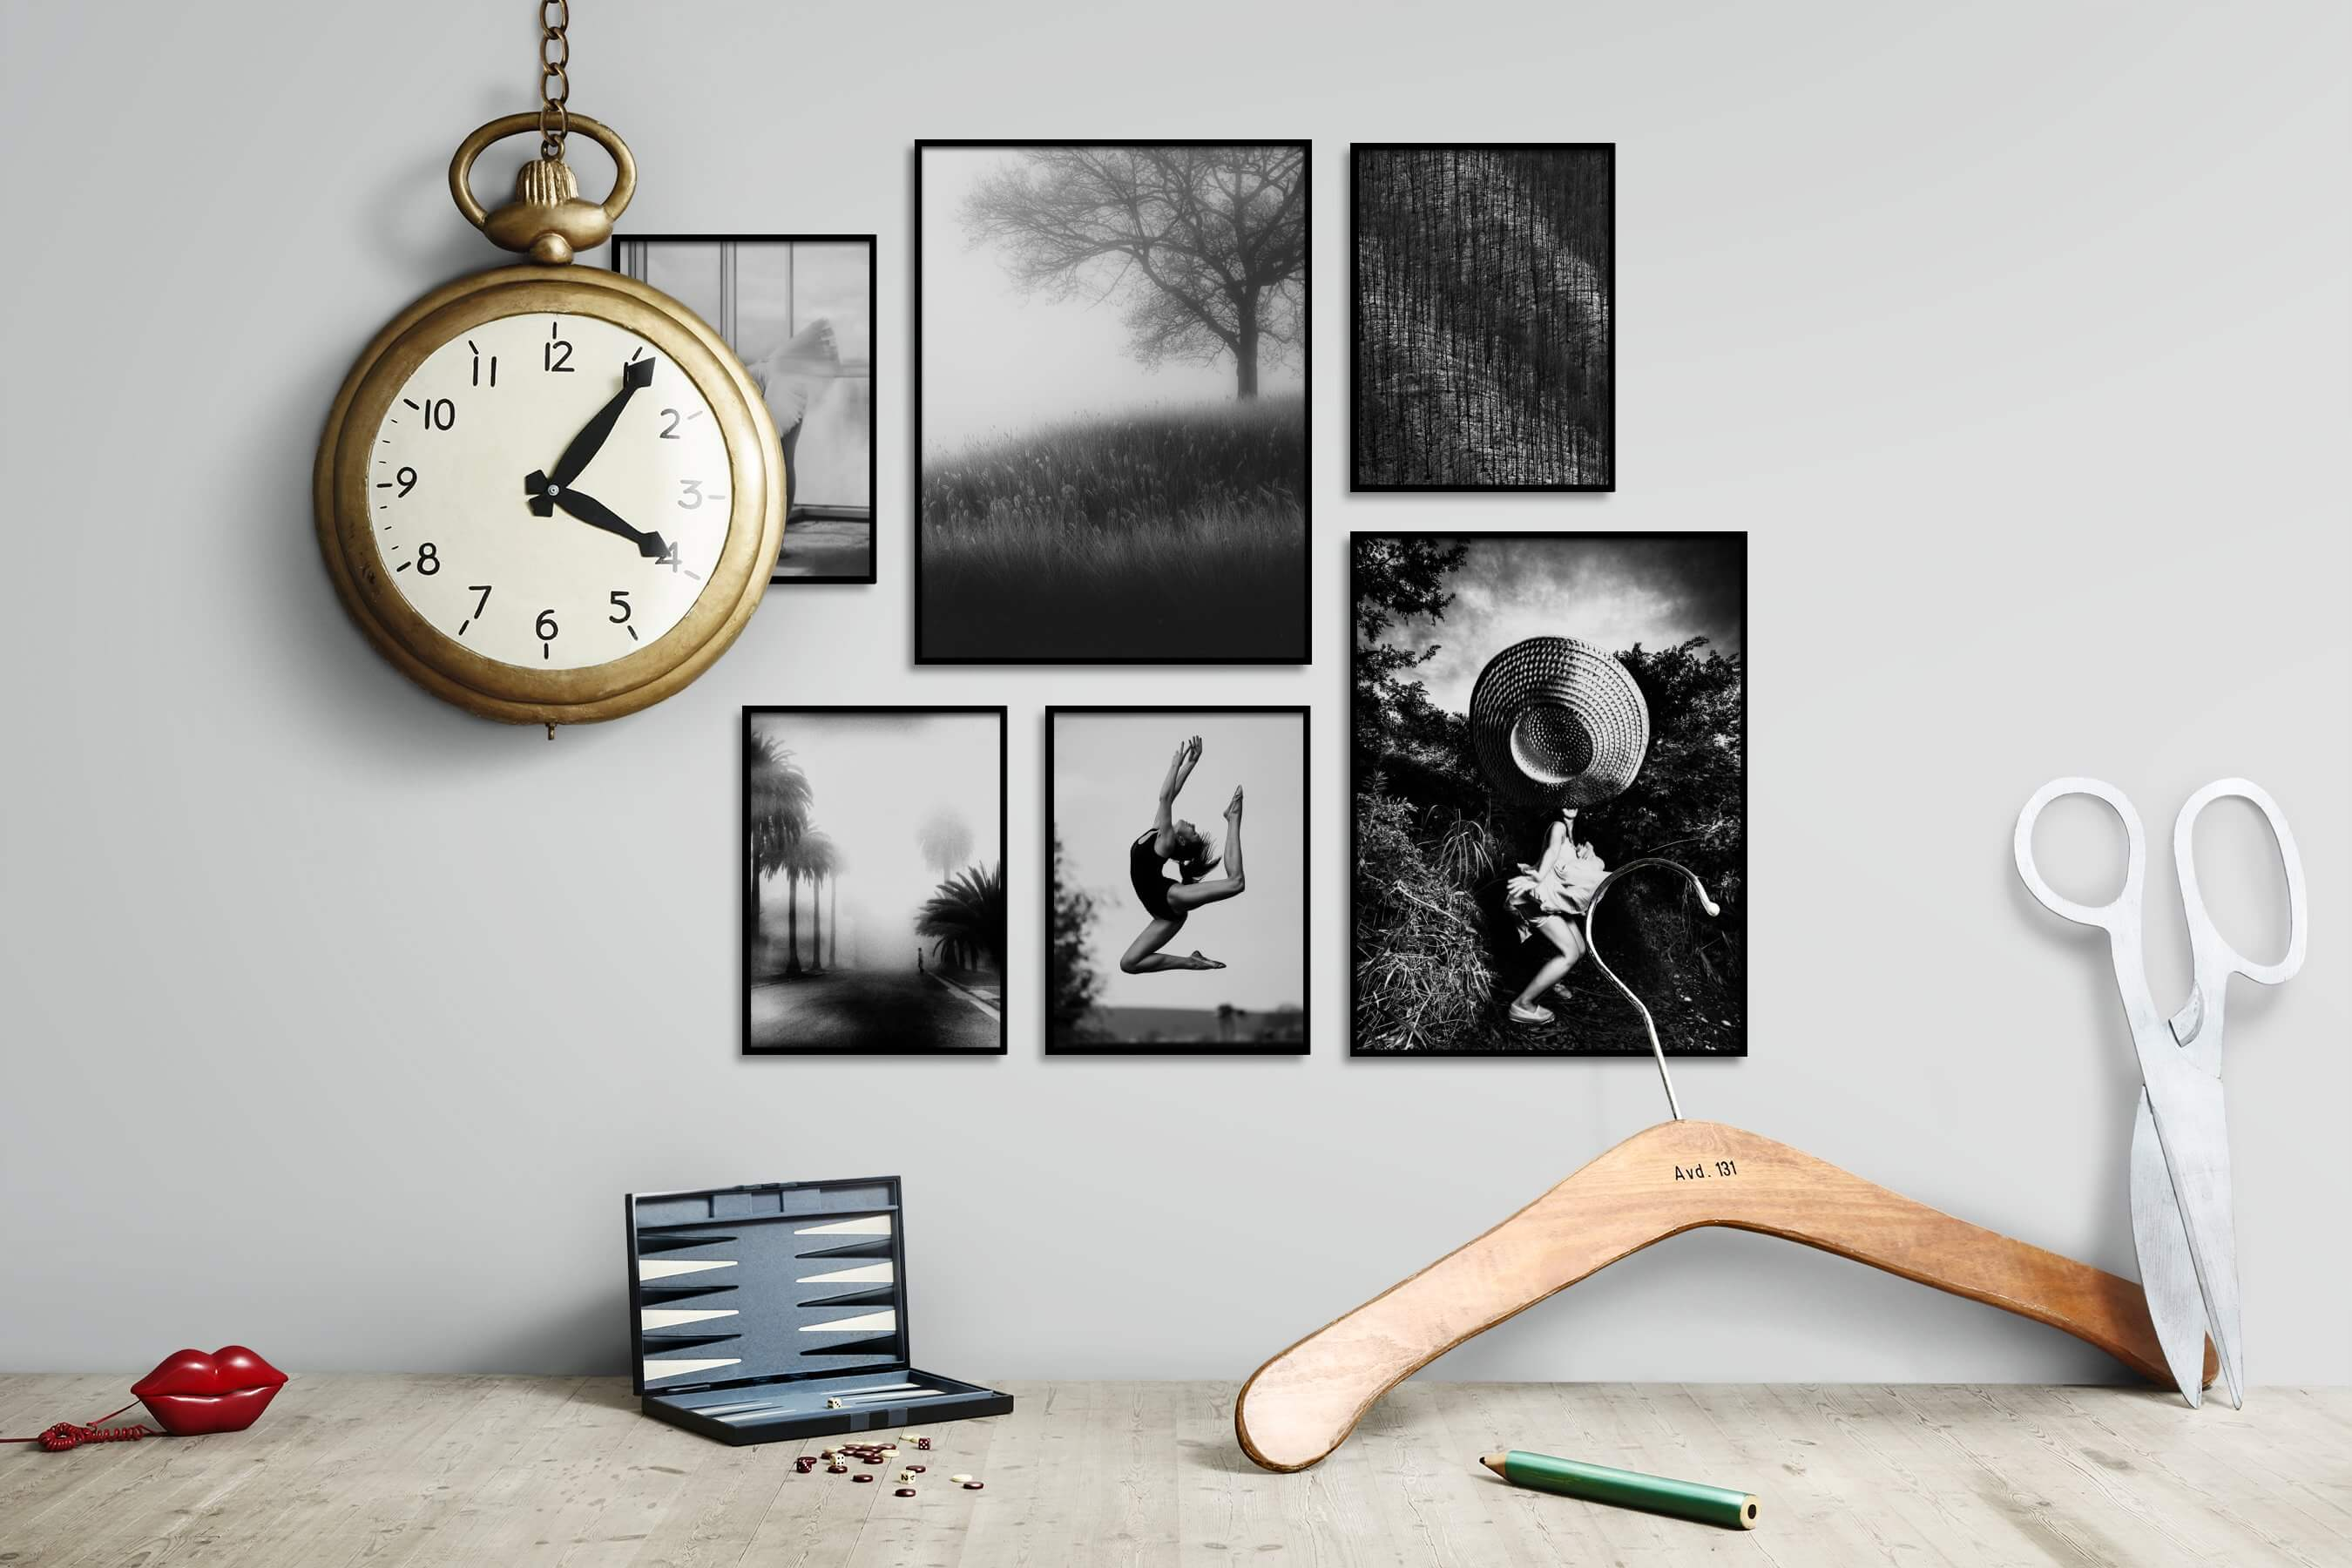 Gallery wall idea with six framed pictures arranged on a wall depicting Fashion & Beauty, Black & White, Country Life, Mindfulness, For the Moderate, City Life, and Nature